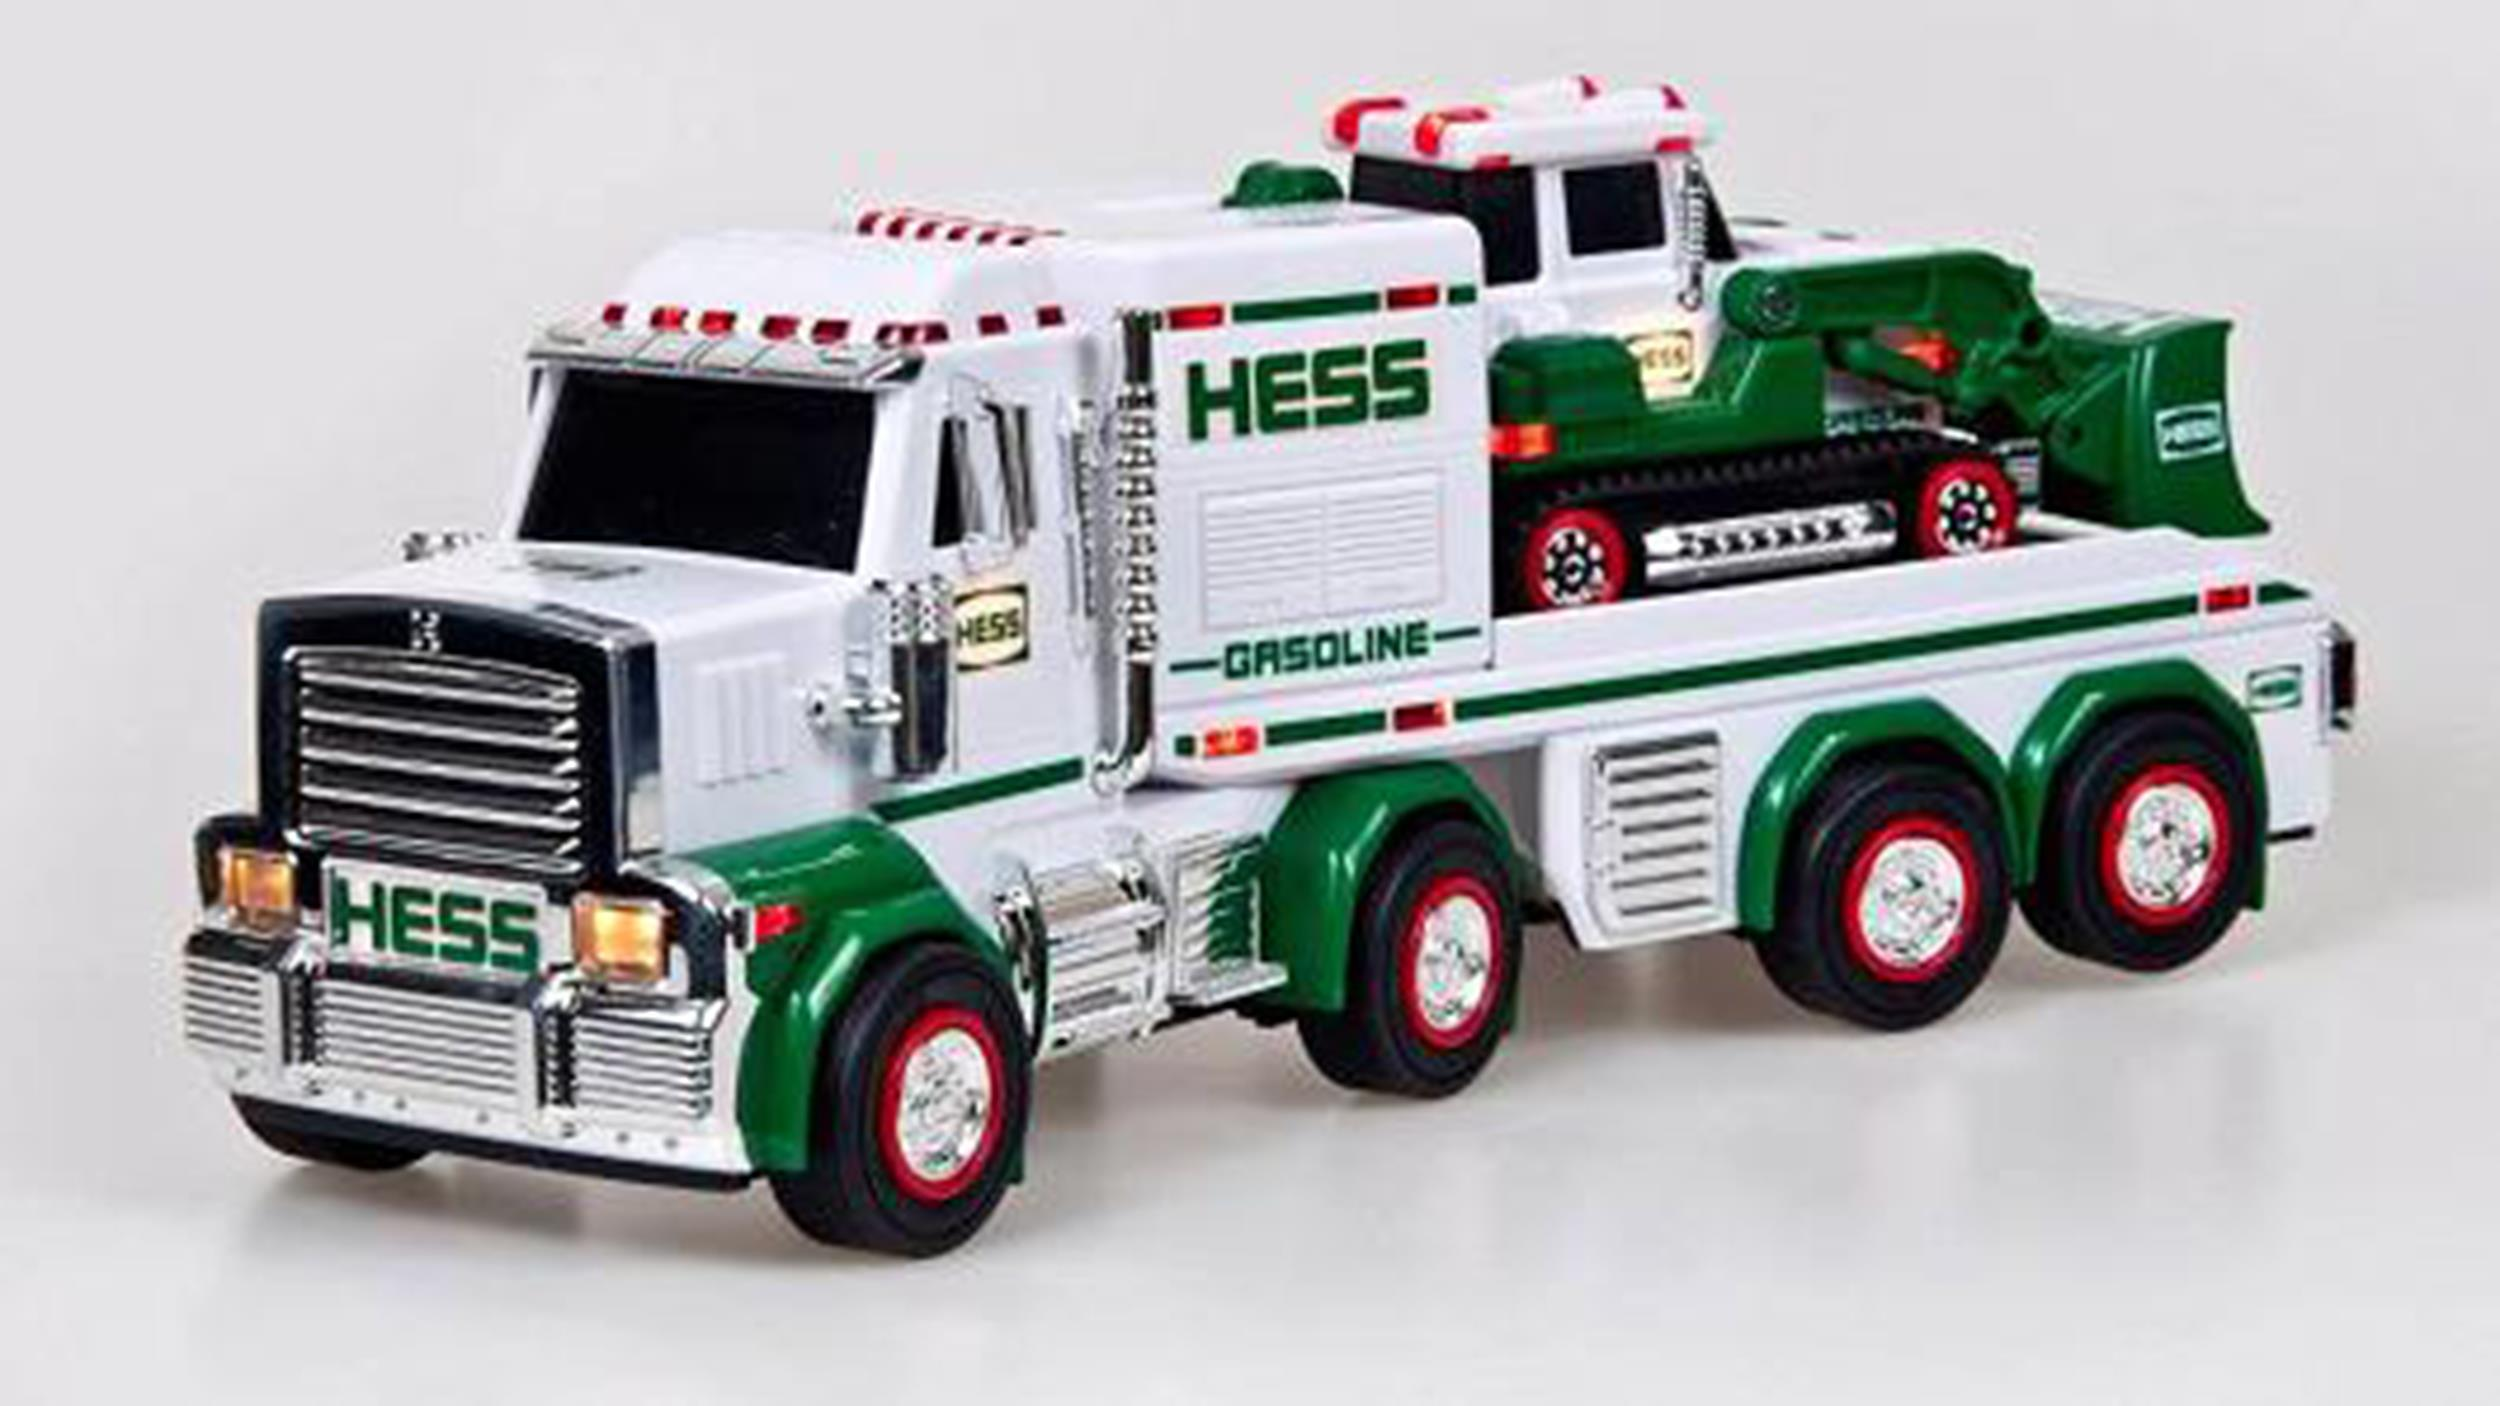 Hess Stations To Be Renamed, But Toy Trucks Roll On NBC News